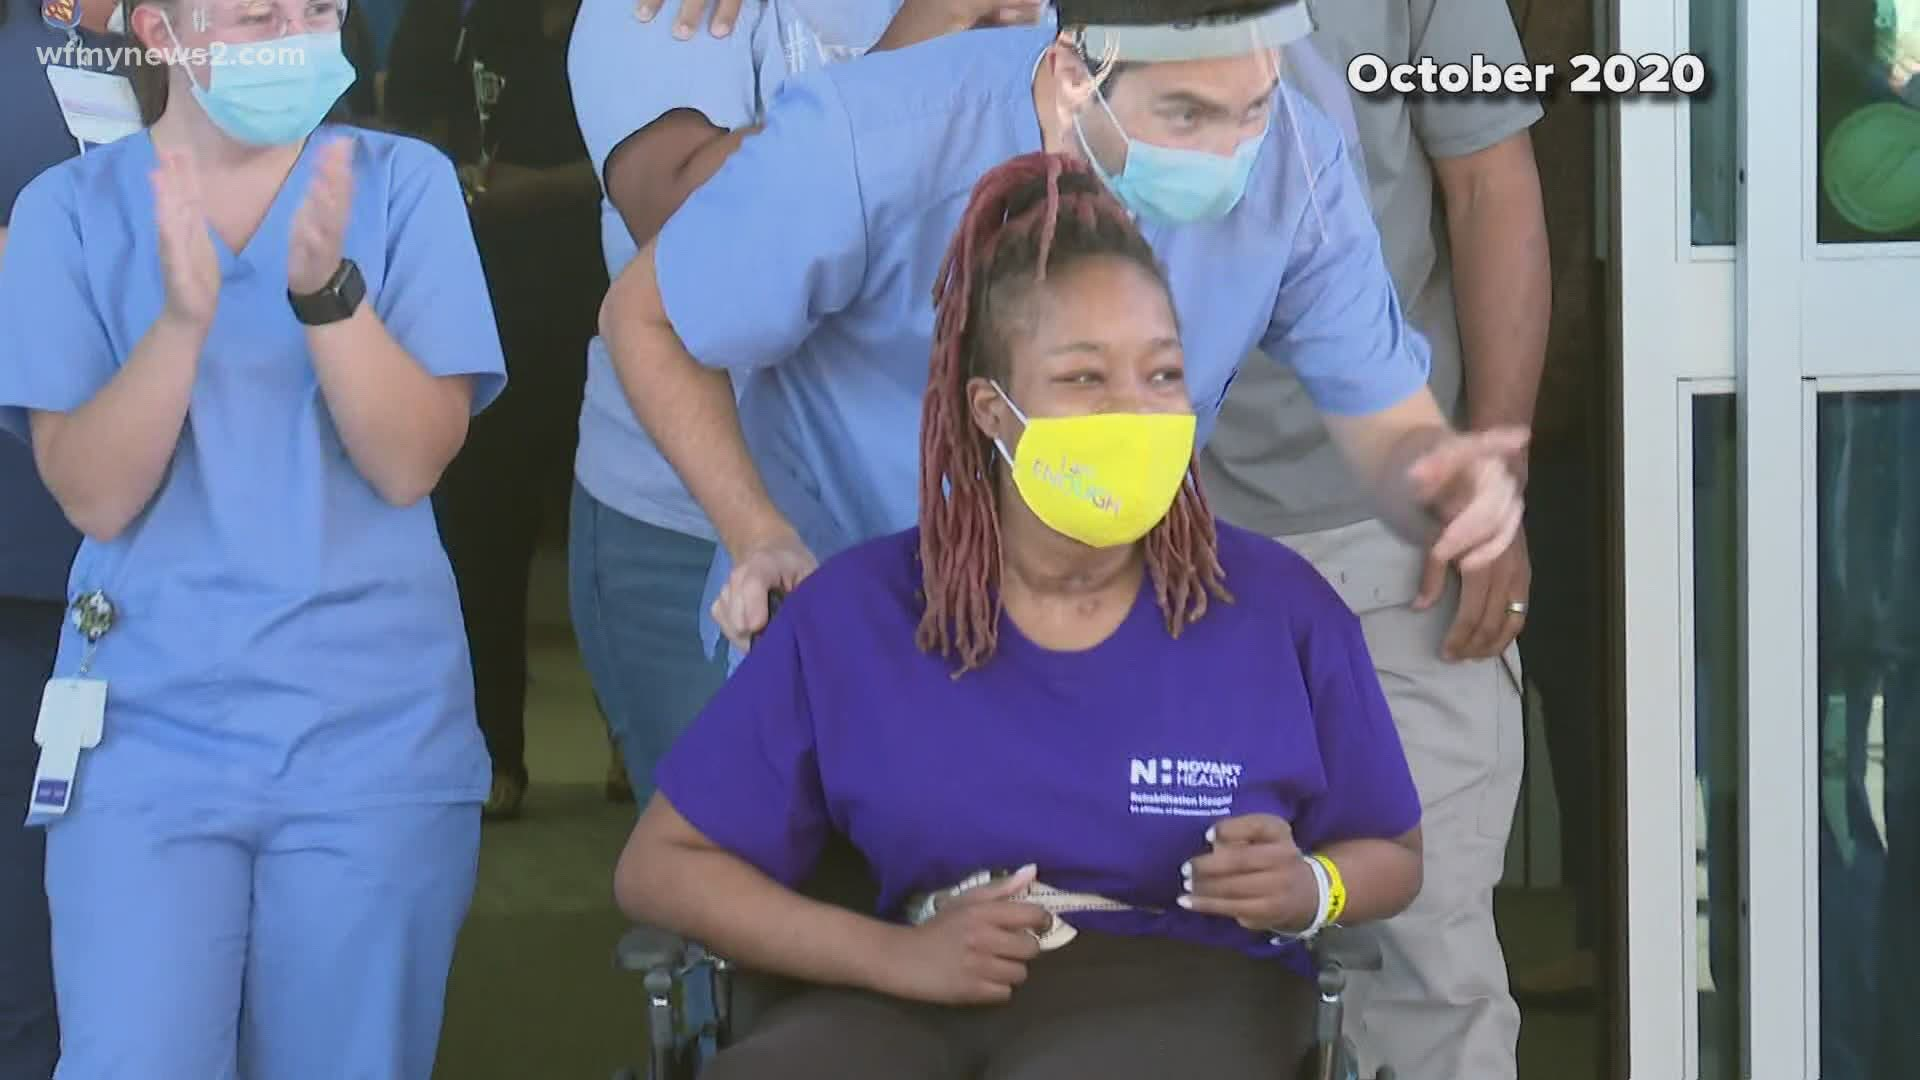 COVID-19 recovery continues months after release   wkyc.com